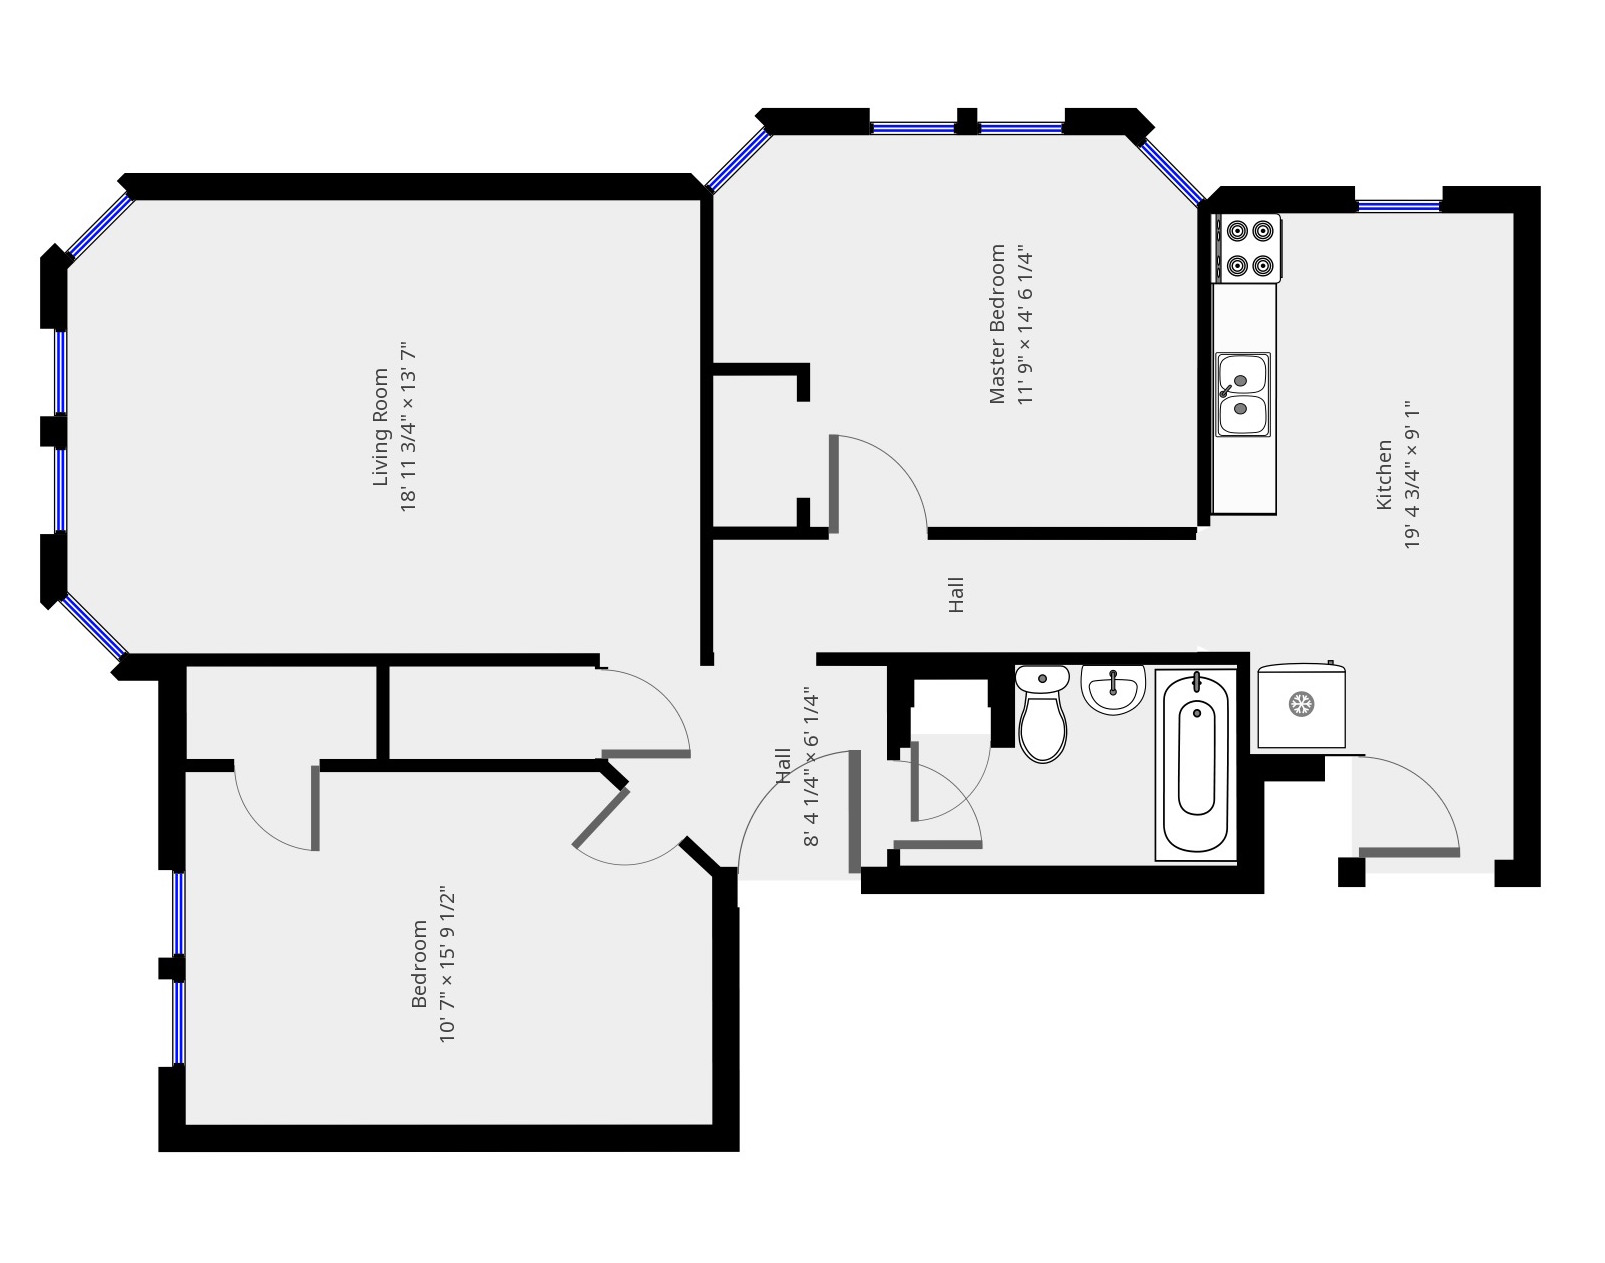 floor plan%2C fletcher 14 n long 1 2 3.jpg